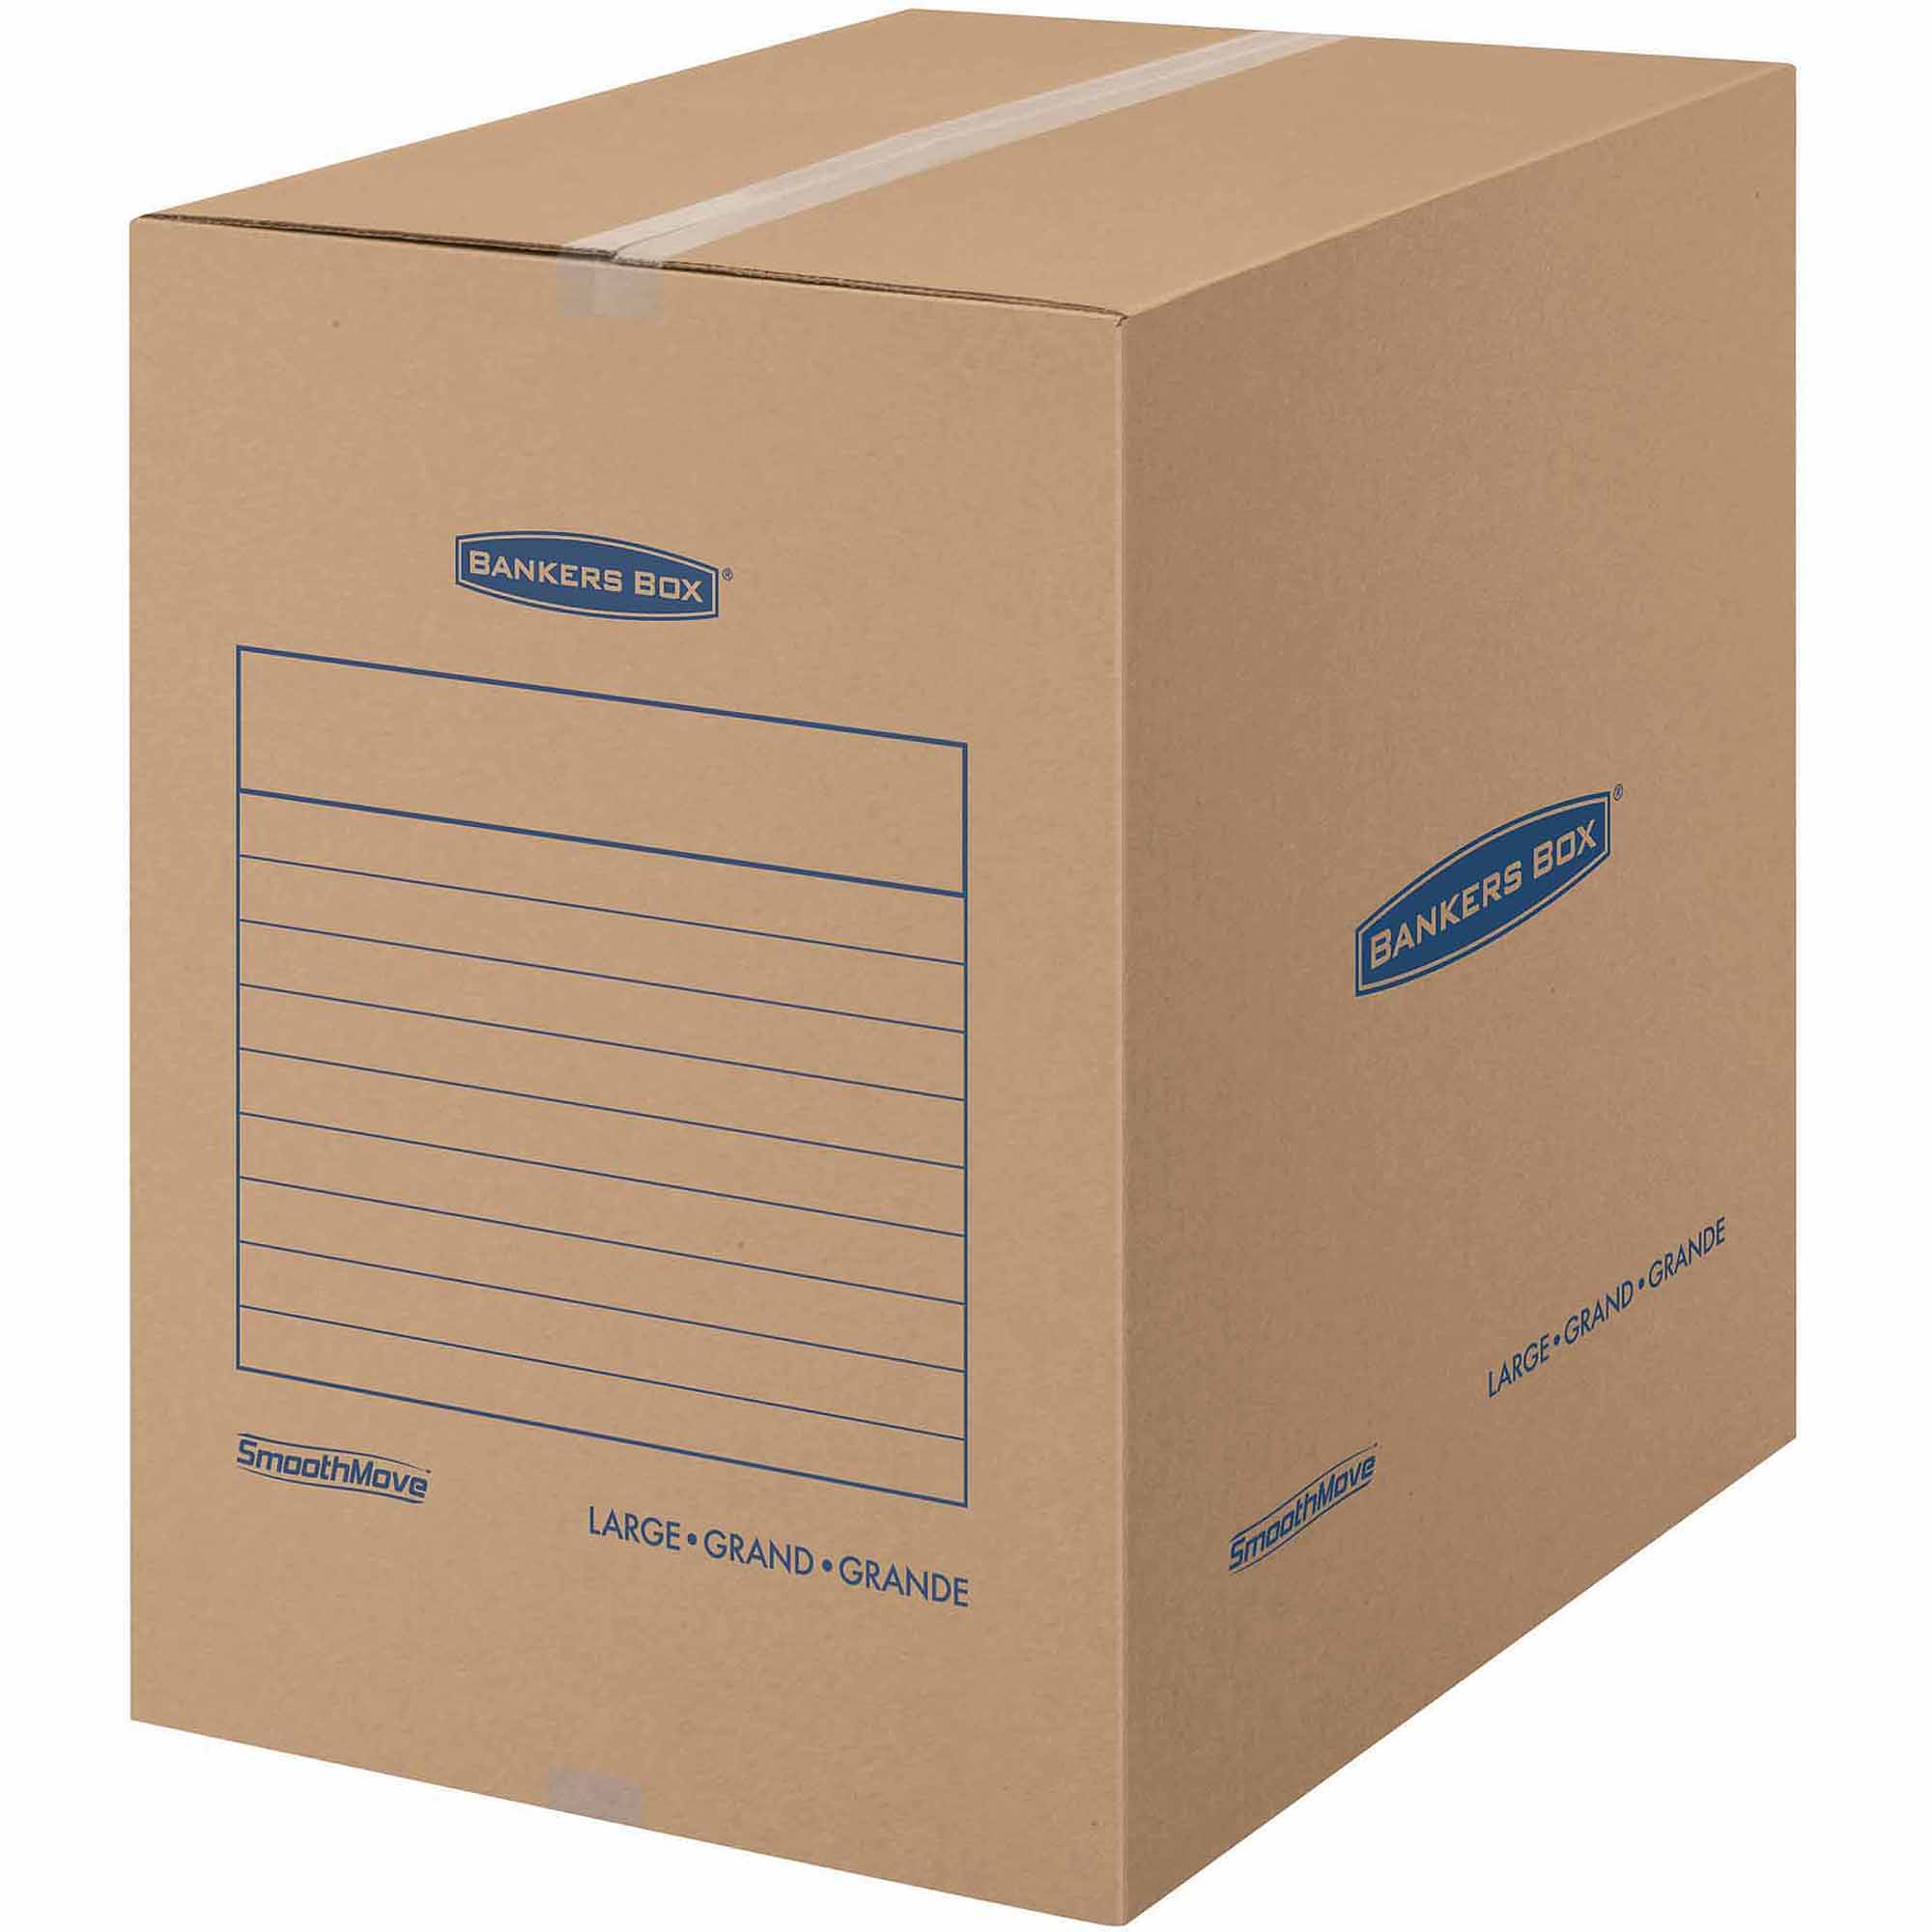 Bankers Box SmoothMove Basic Storage and Moving Box, Large, 7pk